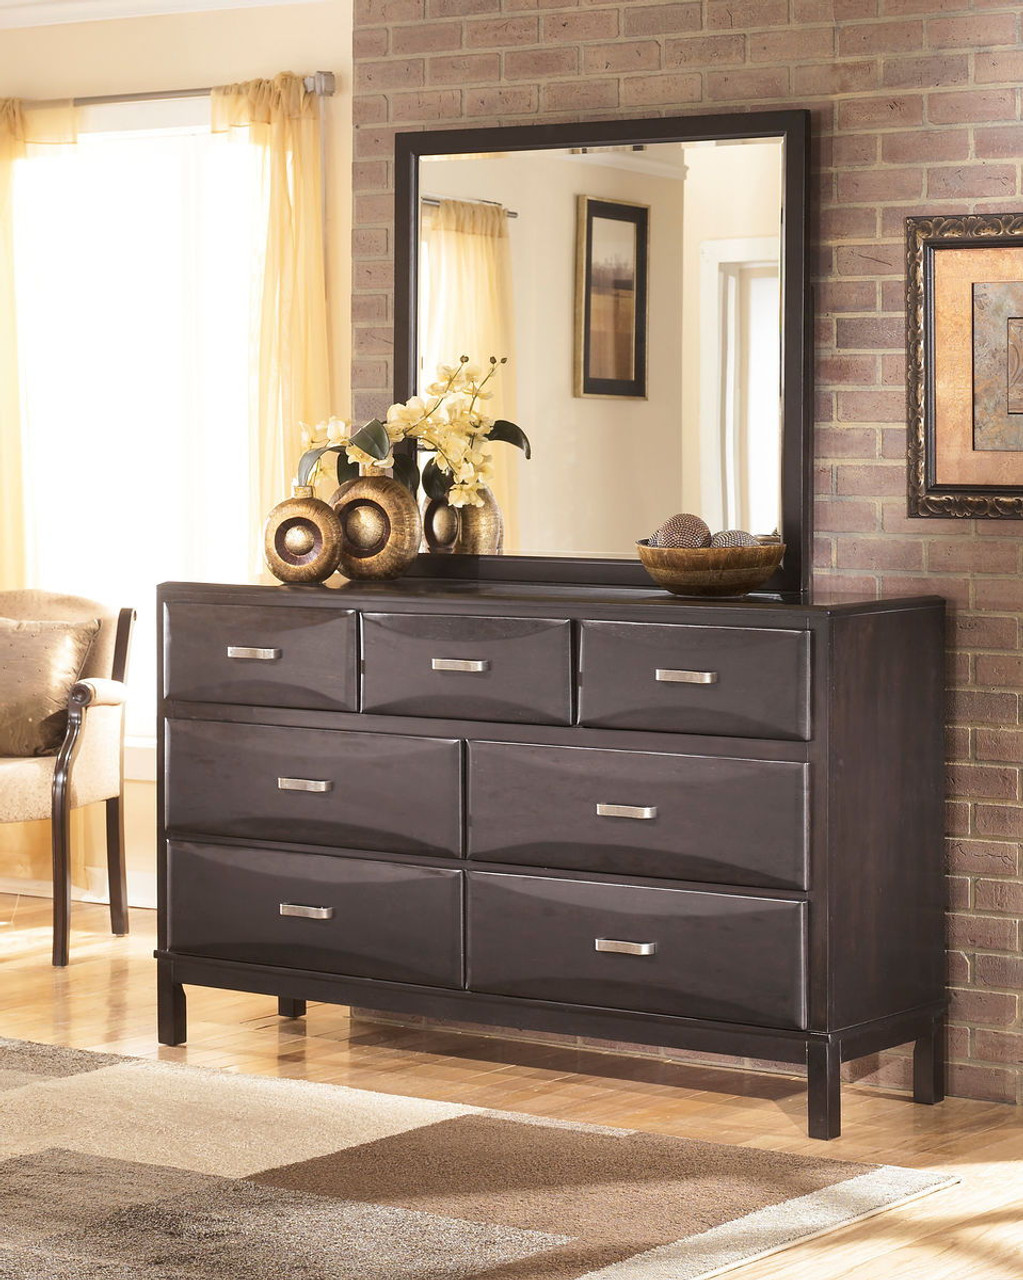 The Kira Almost Black 6 Pc Dresser Mirror Chest King Bed With Storage Available At Direct Value Furniture Serving Roscoe Il And Surrounding Areas